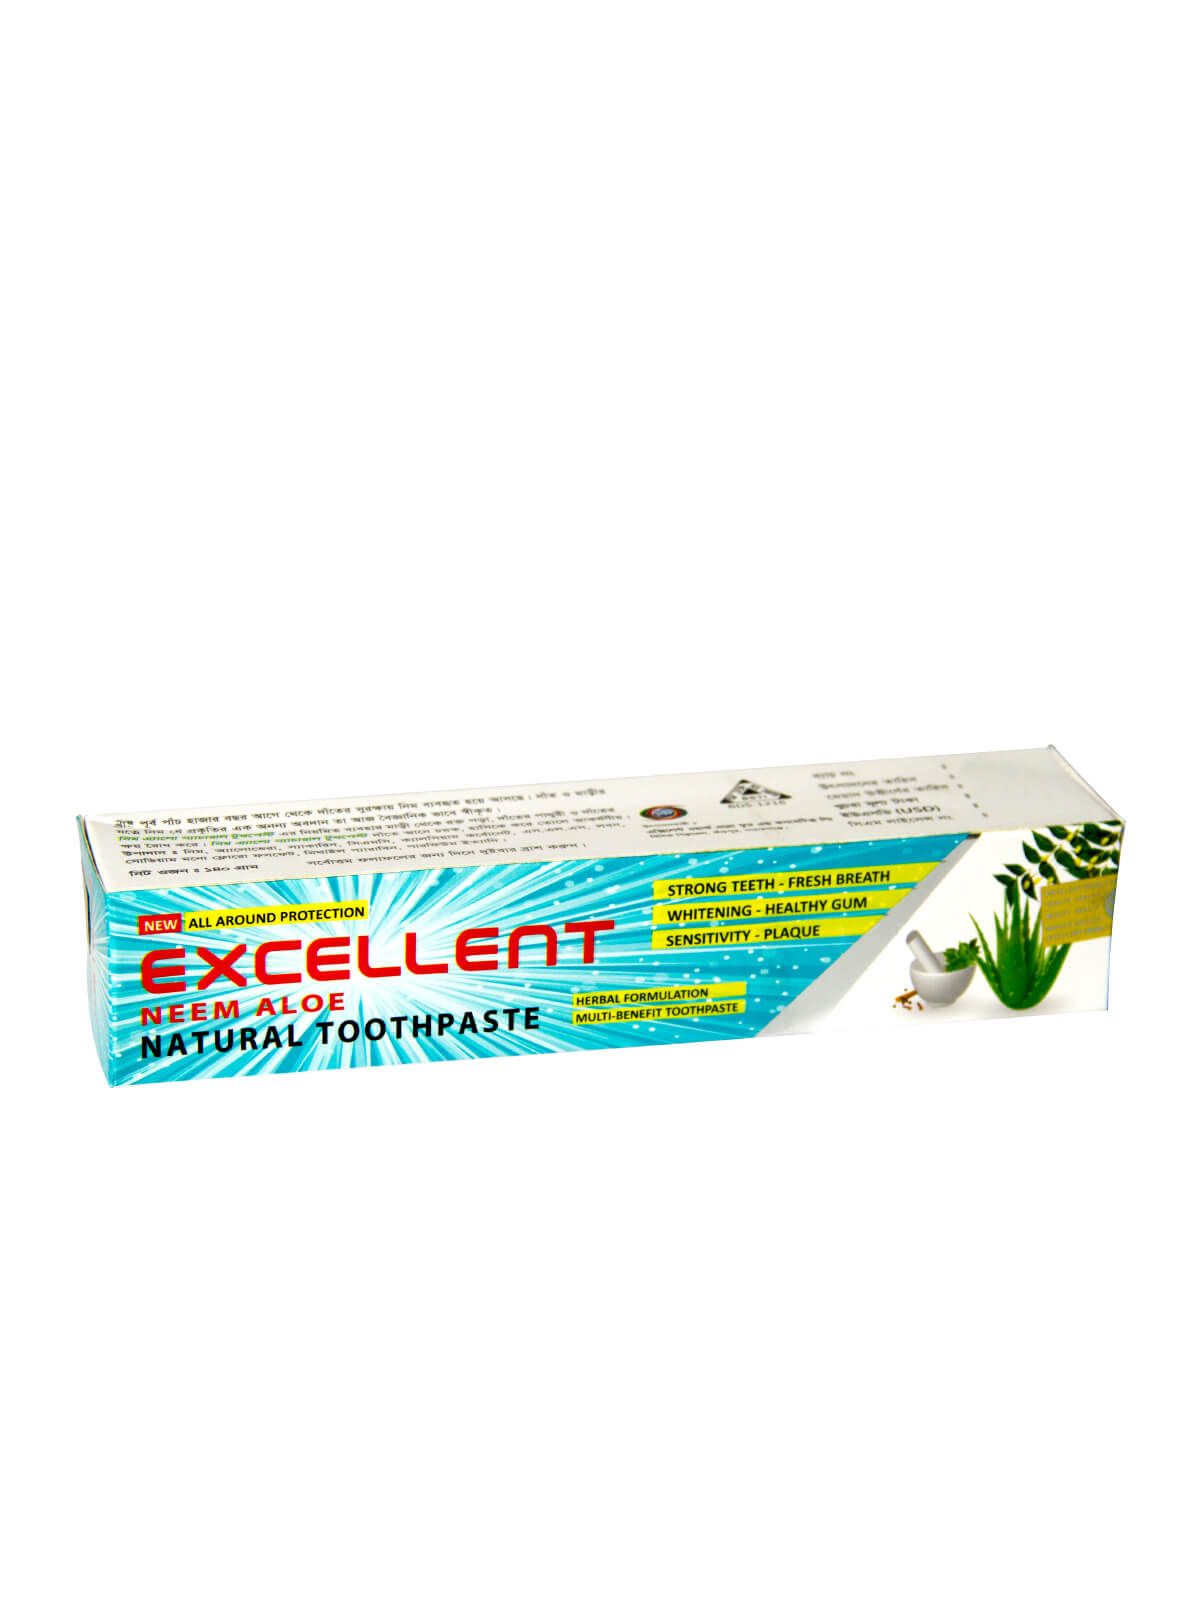 Neem Aloe Natural Toothpaste